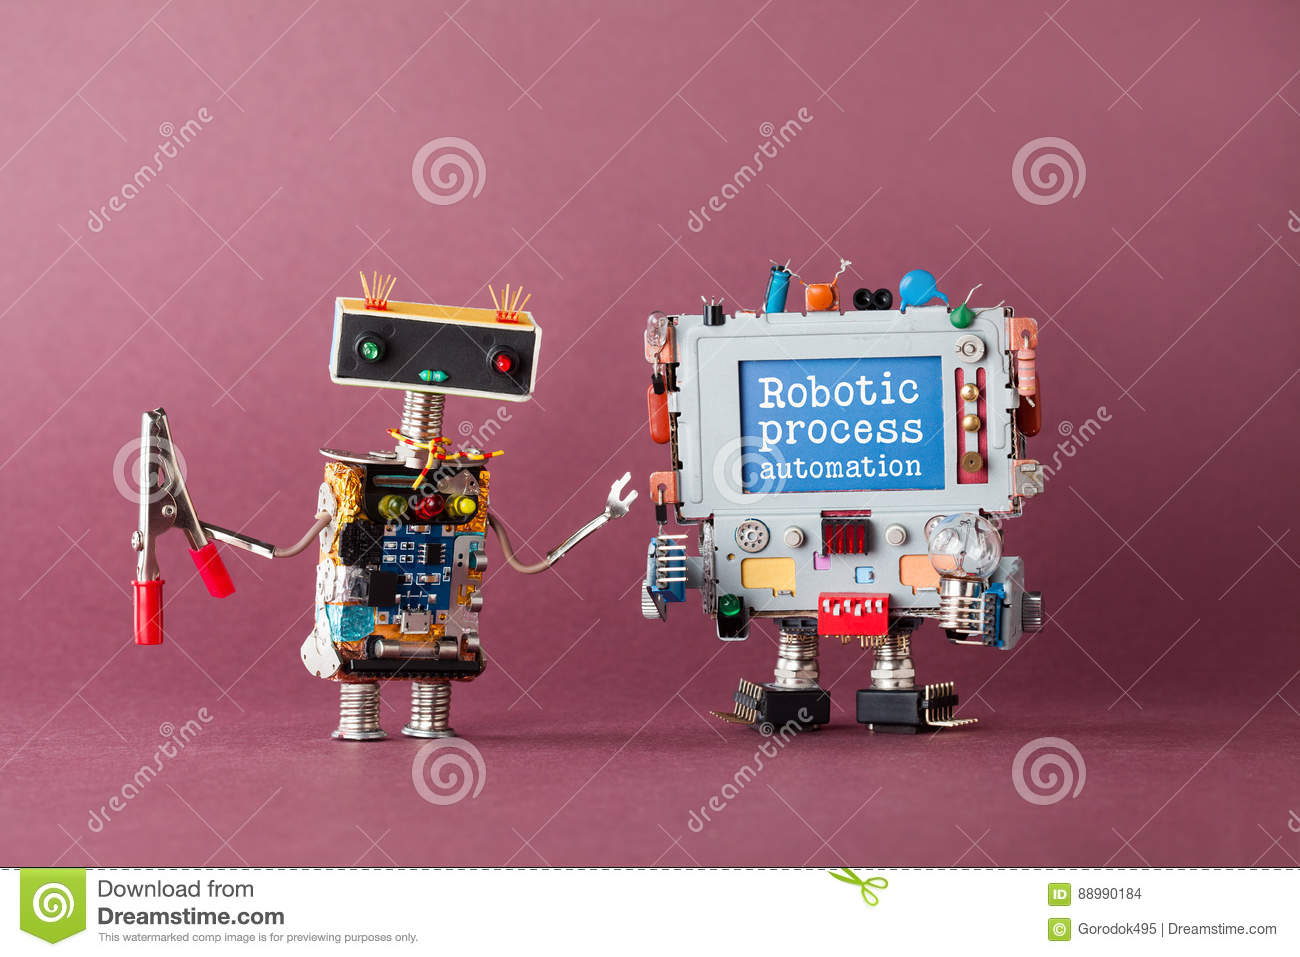 Robotic process automation industry 4.0 concept. IT specialist robot with pliers looking at colorful computer. New